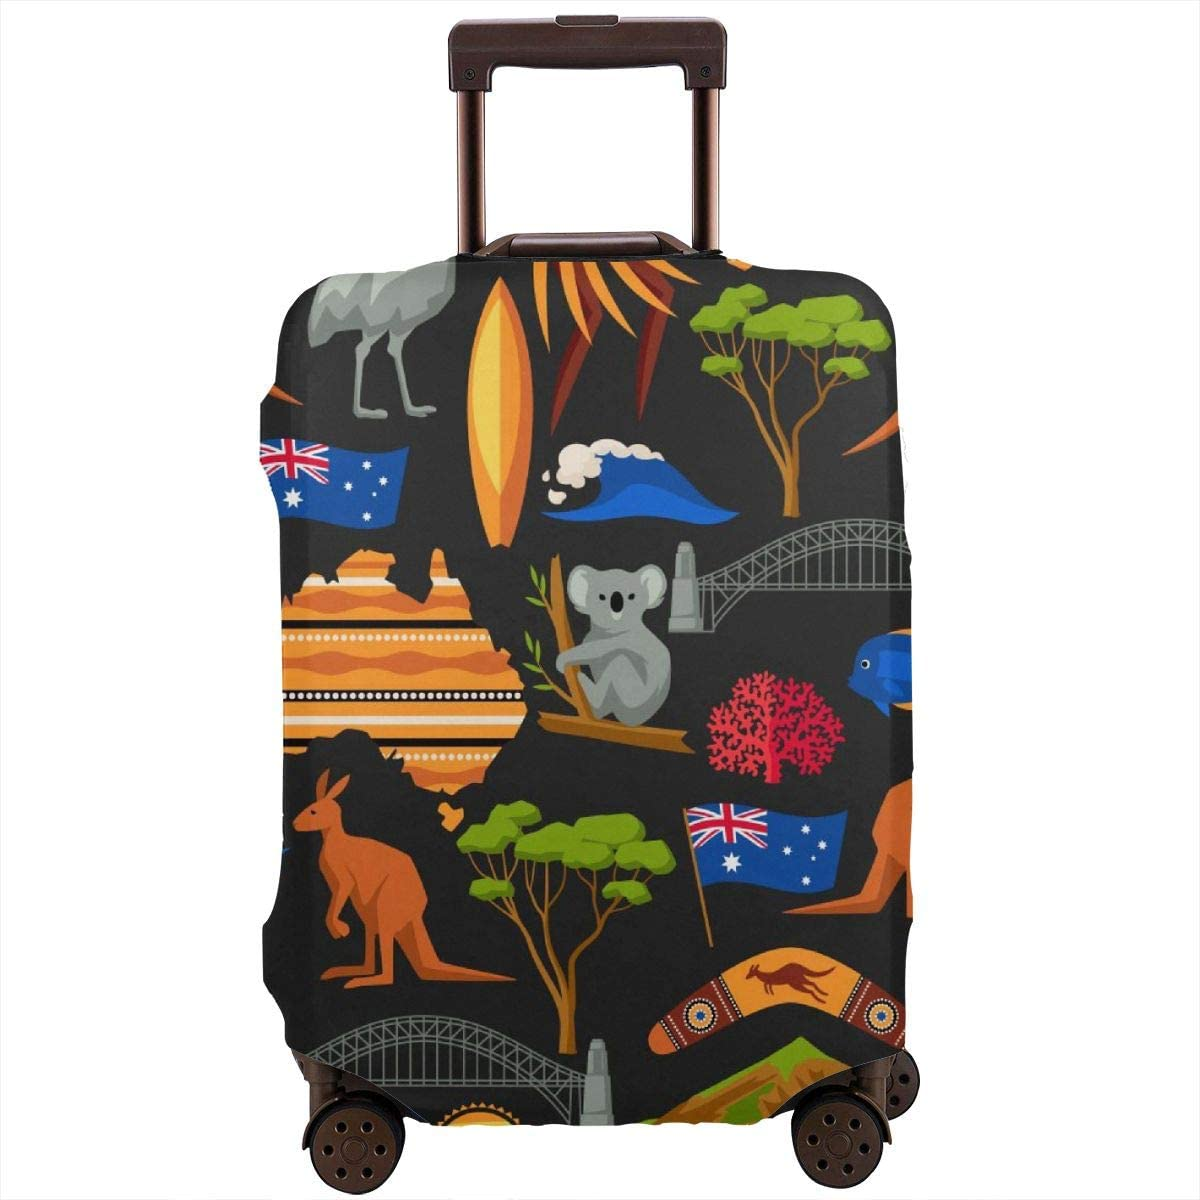 Australian Traditional Symbols Travel Luggage Cover Suitcase Protector Washable Zipper Baggage Cover